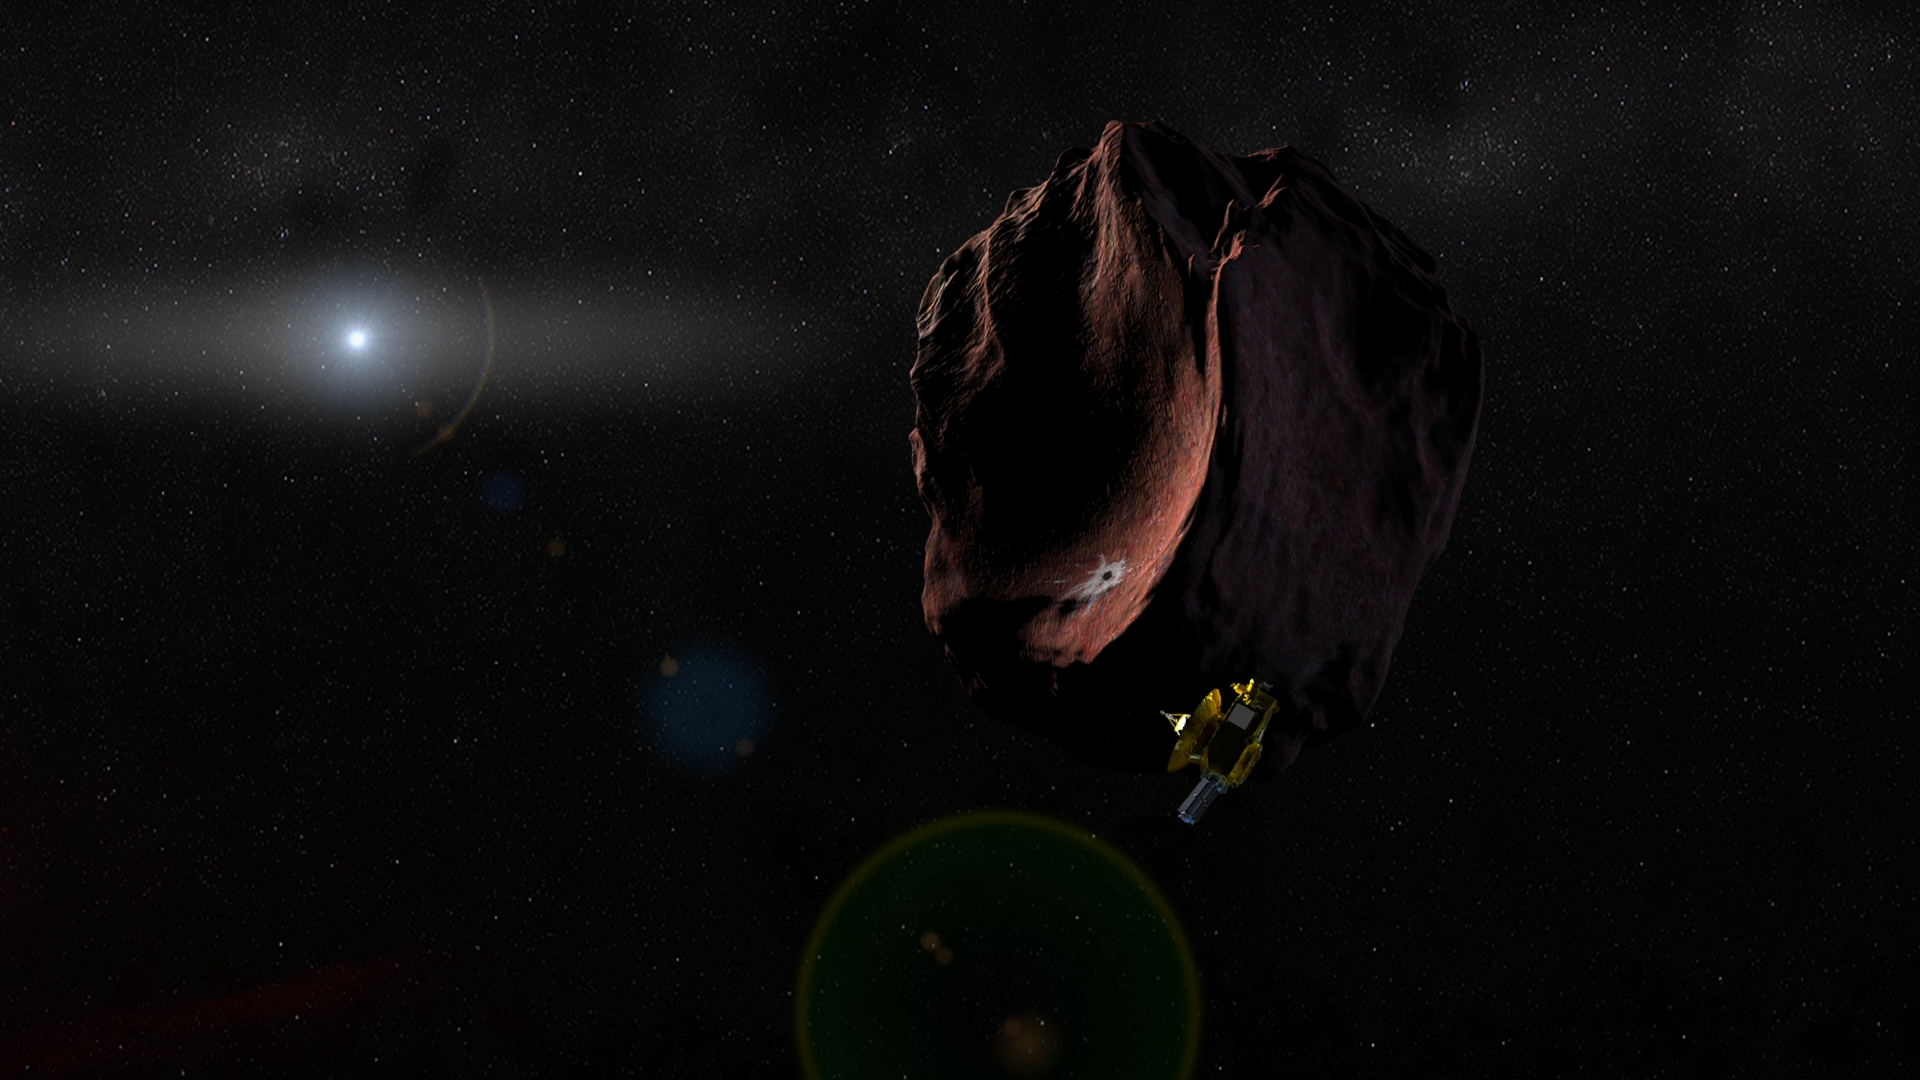 Artist's concept of the New Horizons spacecraft encountering a Kuiper Belt Object. Credit: NASA/Johns Hopkins University Applied Physics Laboratory/Southwest Research Institute